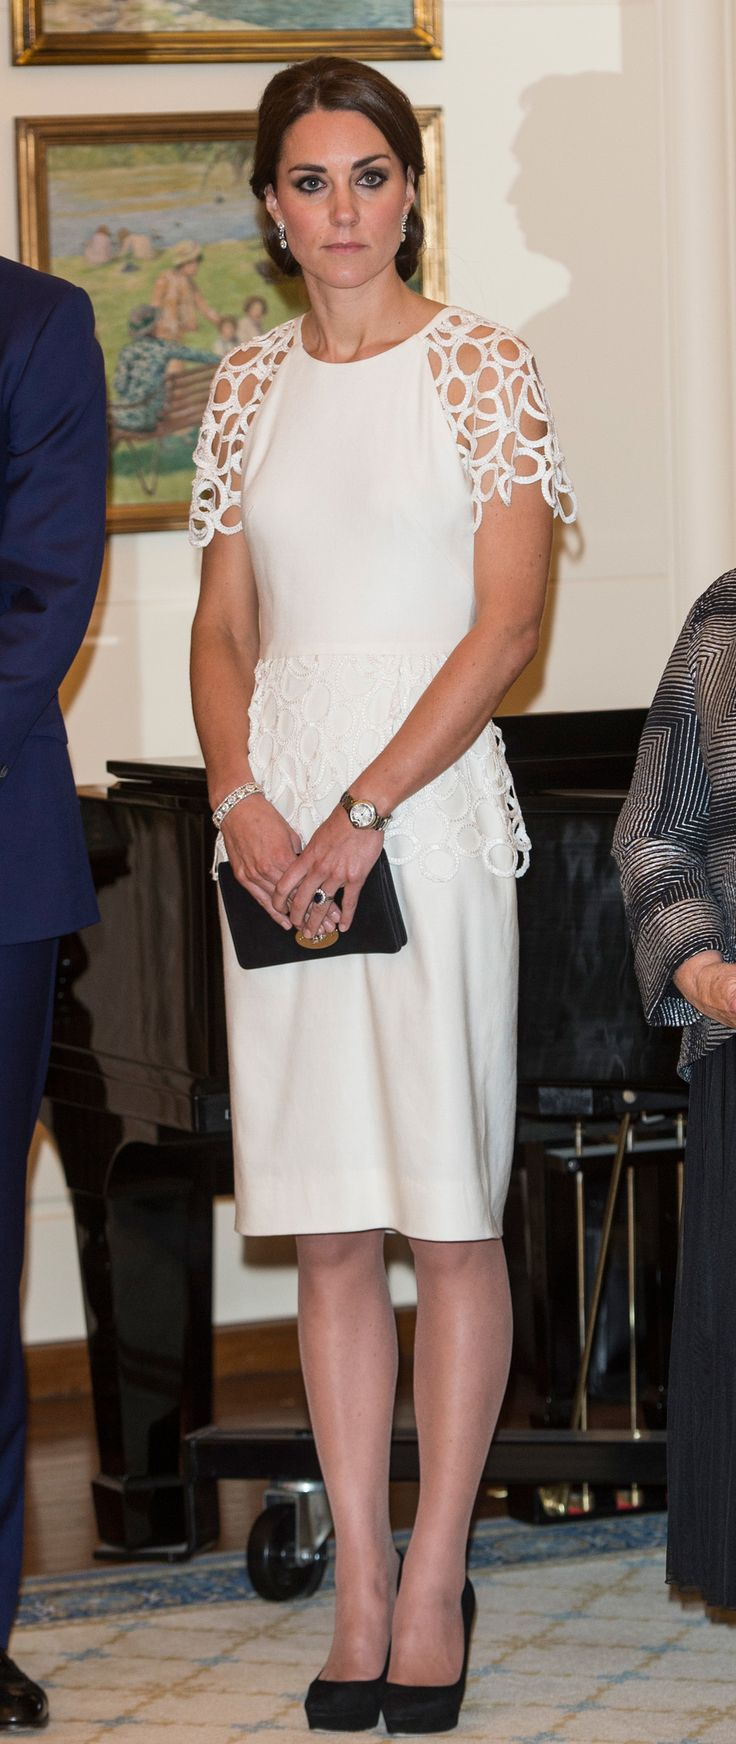 CANBERRA, AUSTRALIA -  Catherine, Duchess of Cambridge attends a reception hosted by the Governor General Peter Cosgrove at Government House on April 24, 2014 in Canberra, Australia. The Duke and Duchess of Cambridge are on a three-week tour of Australia and New Zealand, the first official trip overseas with their son, Prince George of Cambridge.  (Photo by Pool/Samir Hussein/WireImage) via @AOL_Lifestyle Read